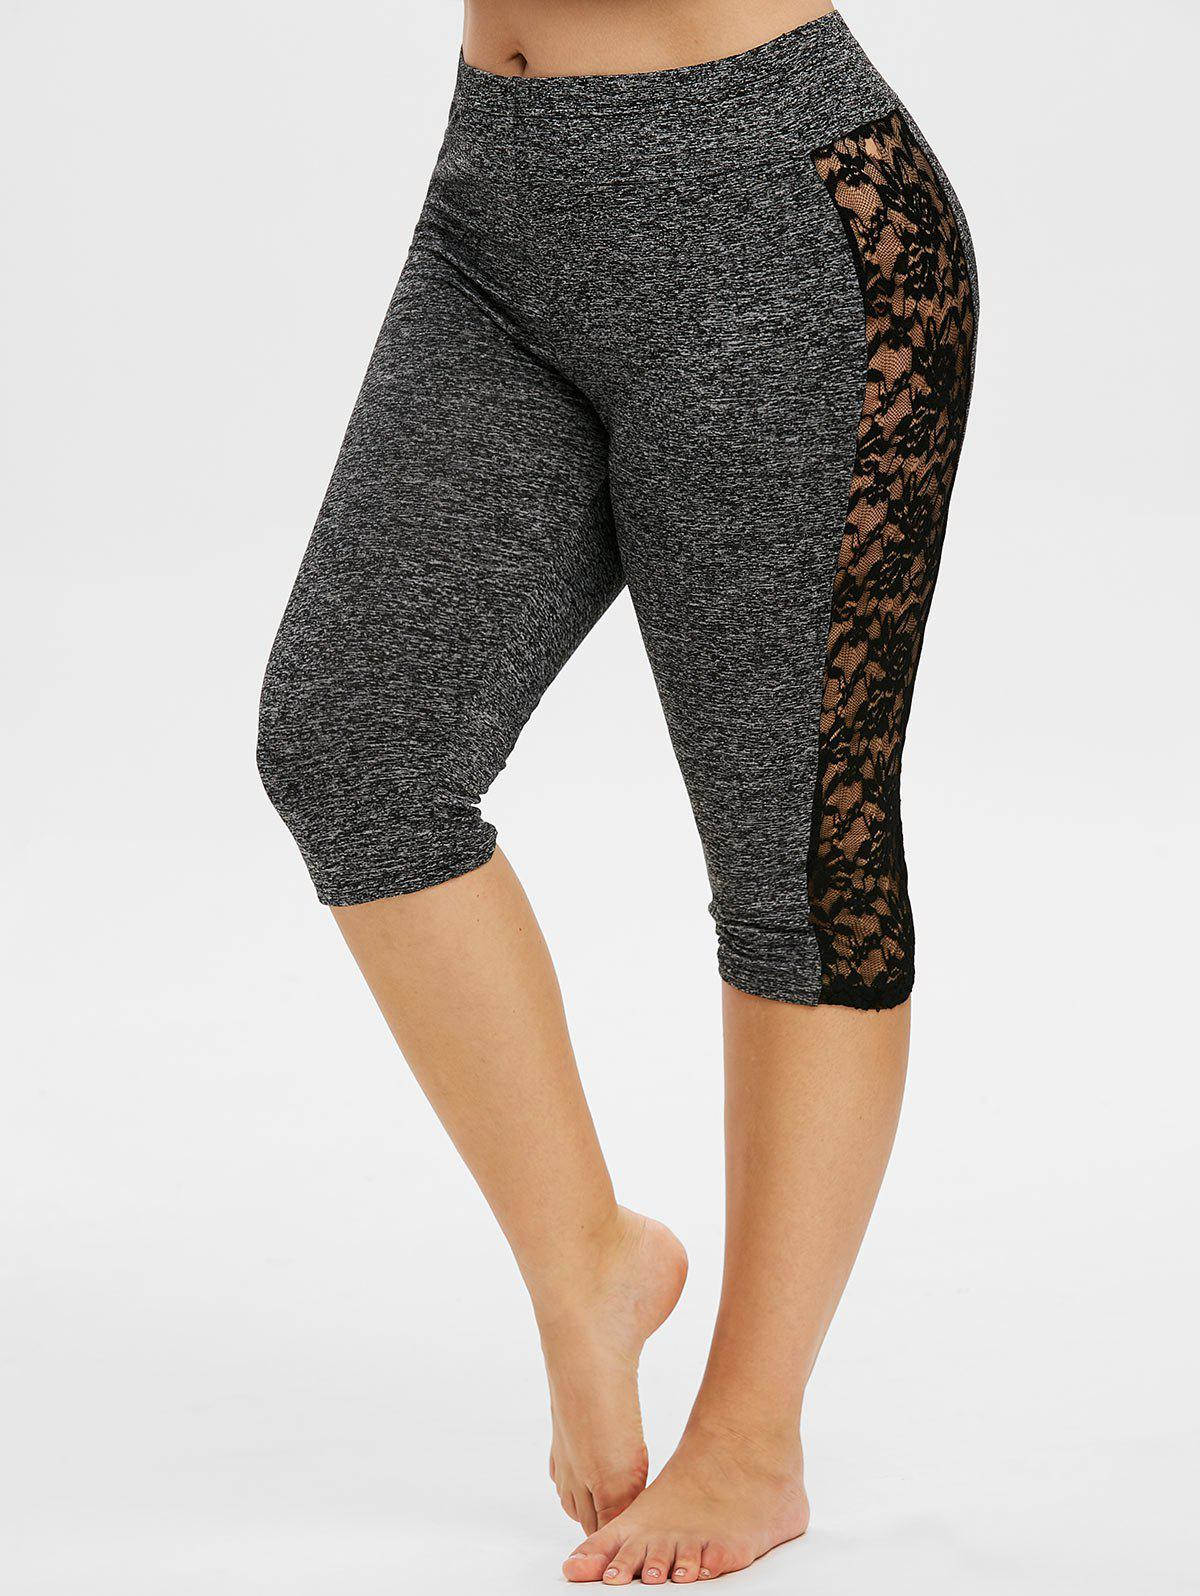 Affordable Space Dye Lace Panel Knee Length Plus Size Leggings